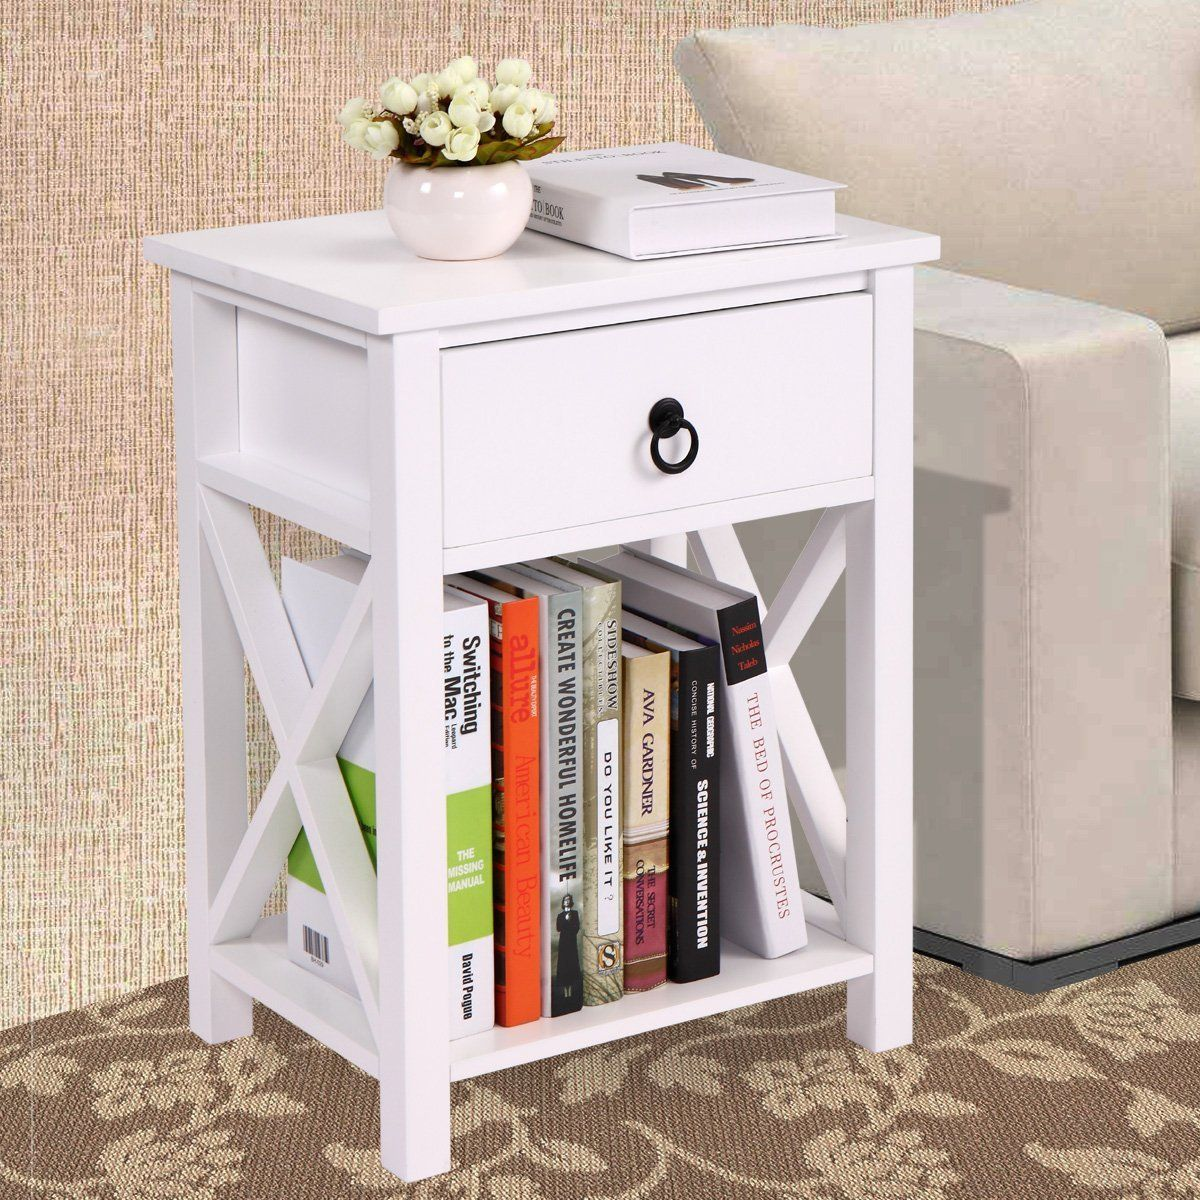 jaxpety white finish design side end table night stand storage kenzie accent shelf with bin half round top antique telephone square nesting tables drawer dishwasher patio chair